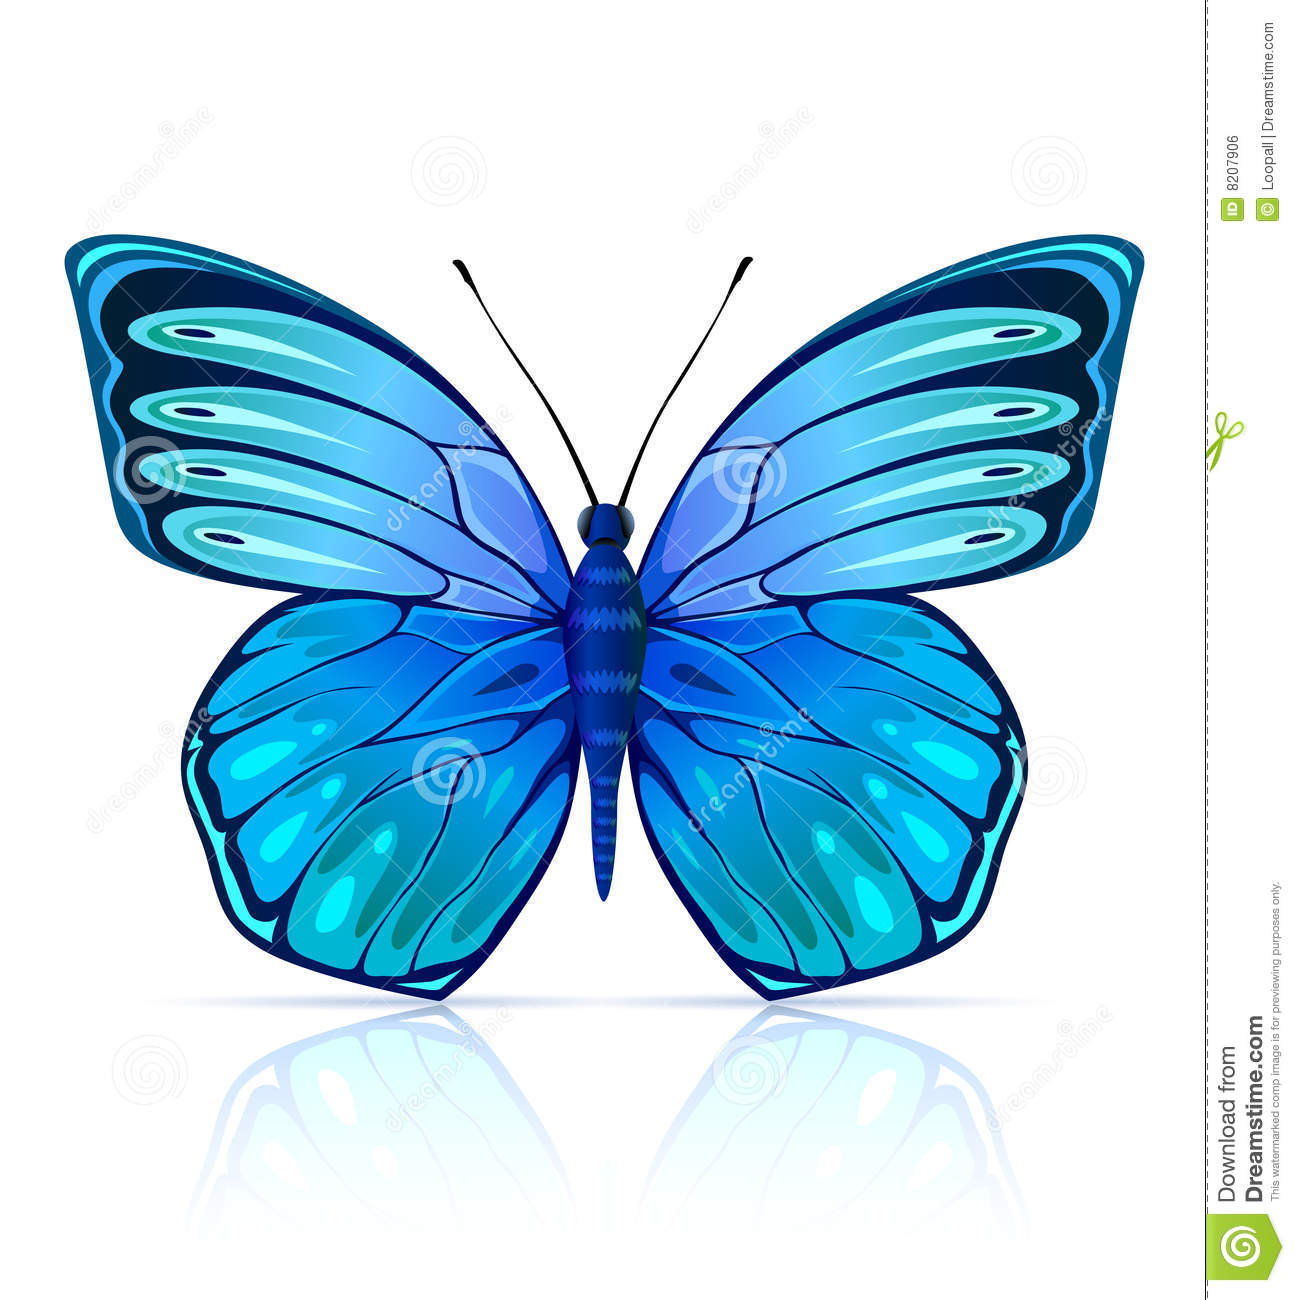 hight resolution of insecto azul mariposa aislado monarch butterfly clipart cartoon fly